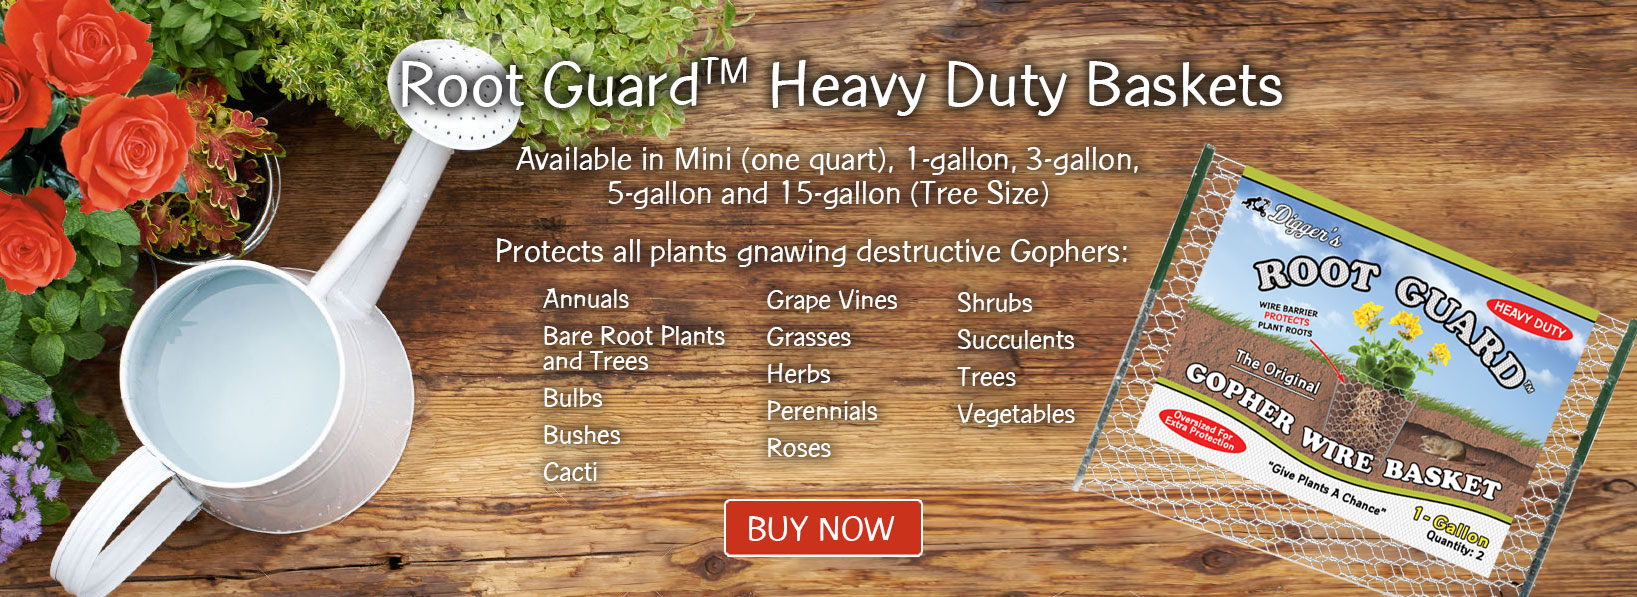 Root Guard Heavy Duty Baskets